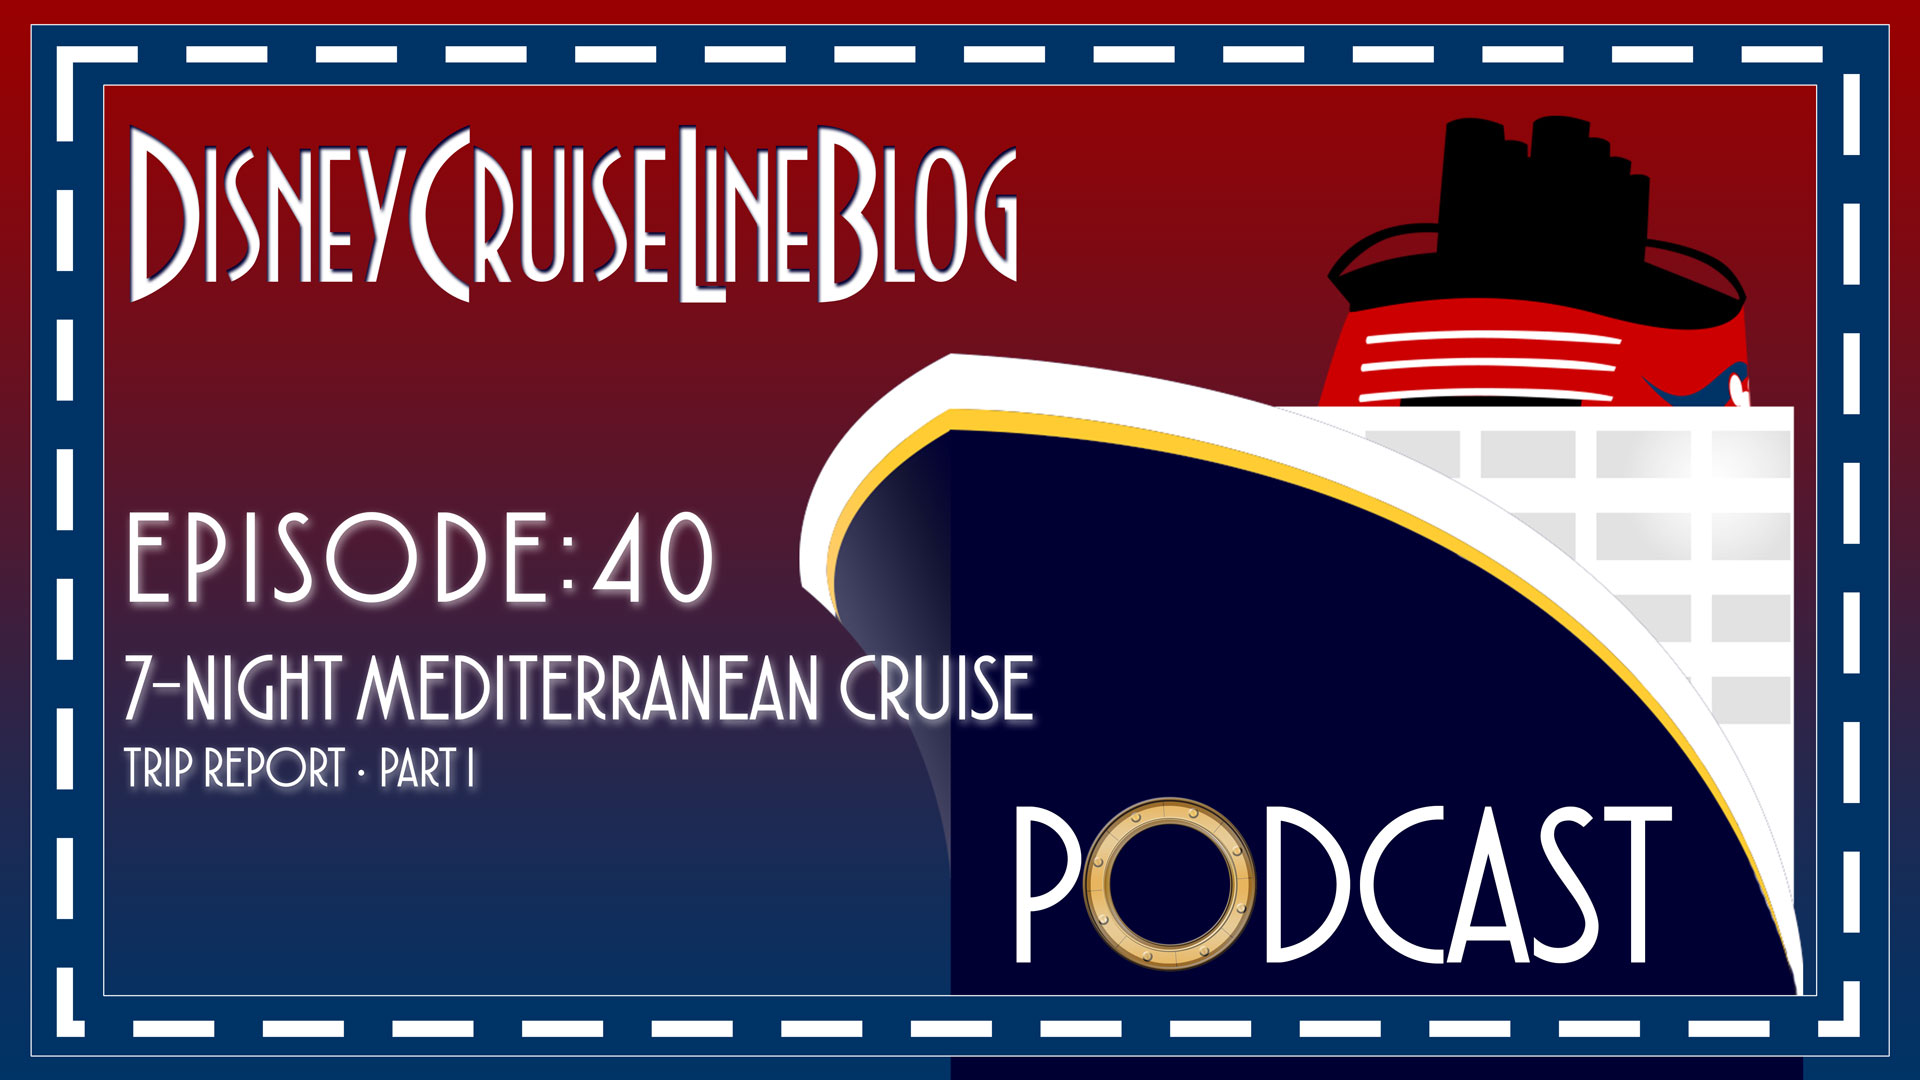 DCL Blog Podcast Episode 40 7night Mediterranean Trip Report Part 1